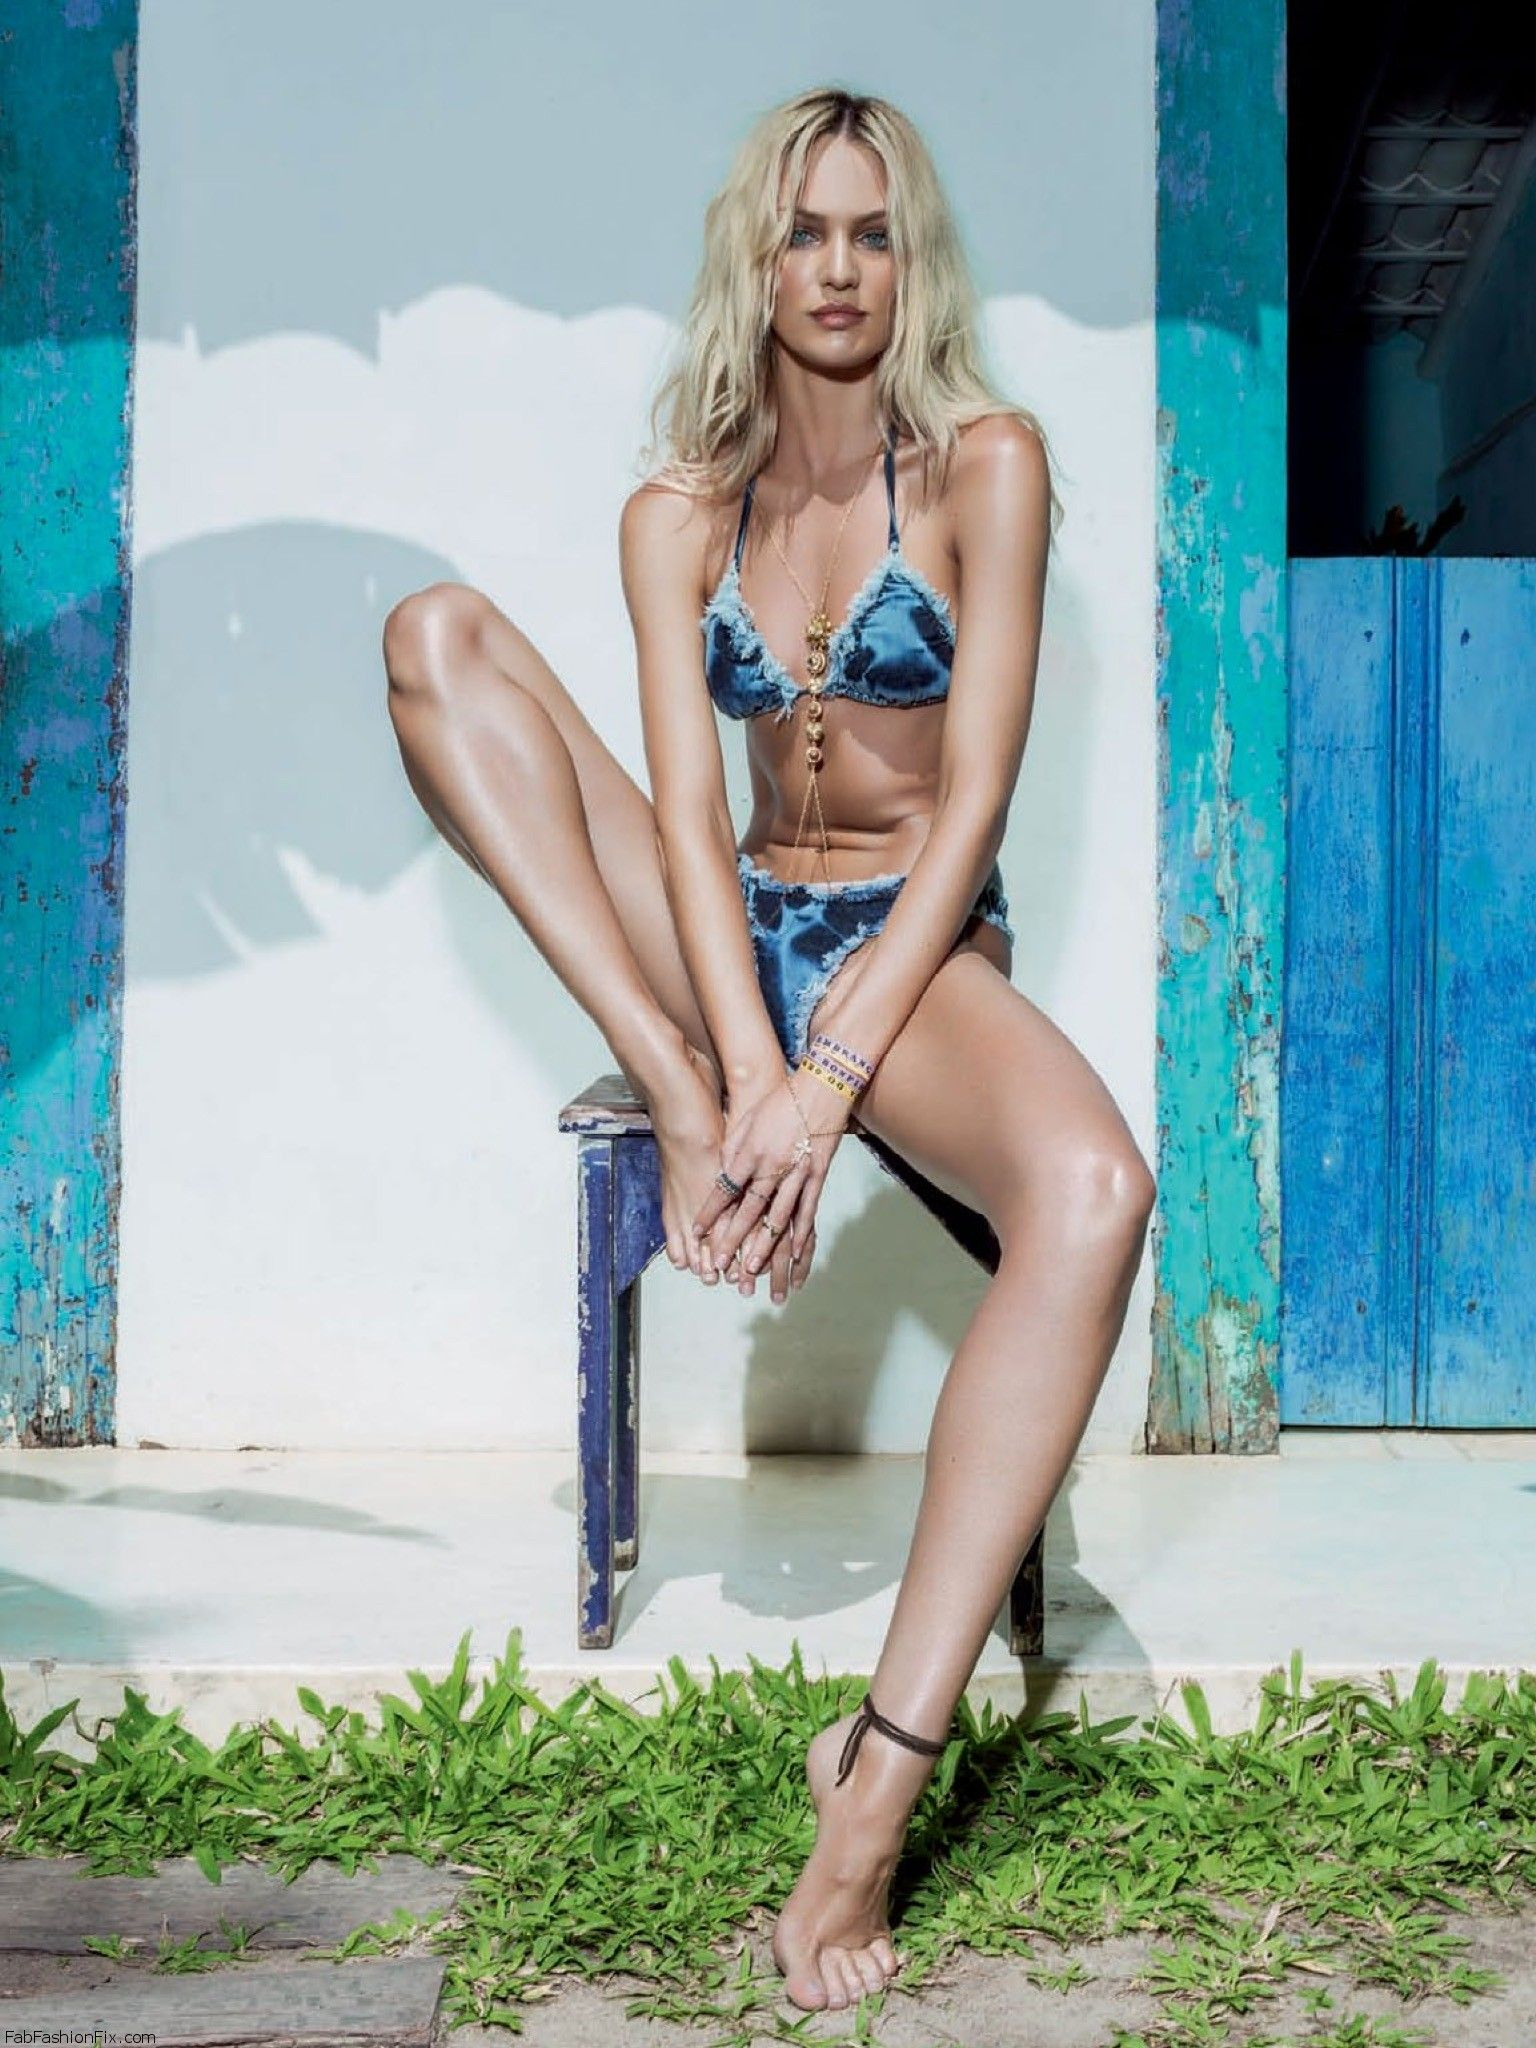 Fashion_Scans_Remastered.Candice_Swanepoel.VOGUE_BRAZIL.January_2014.Scanned_by_VampireHorde.HQ.23